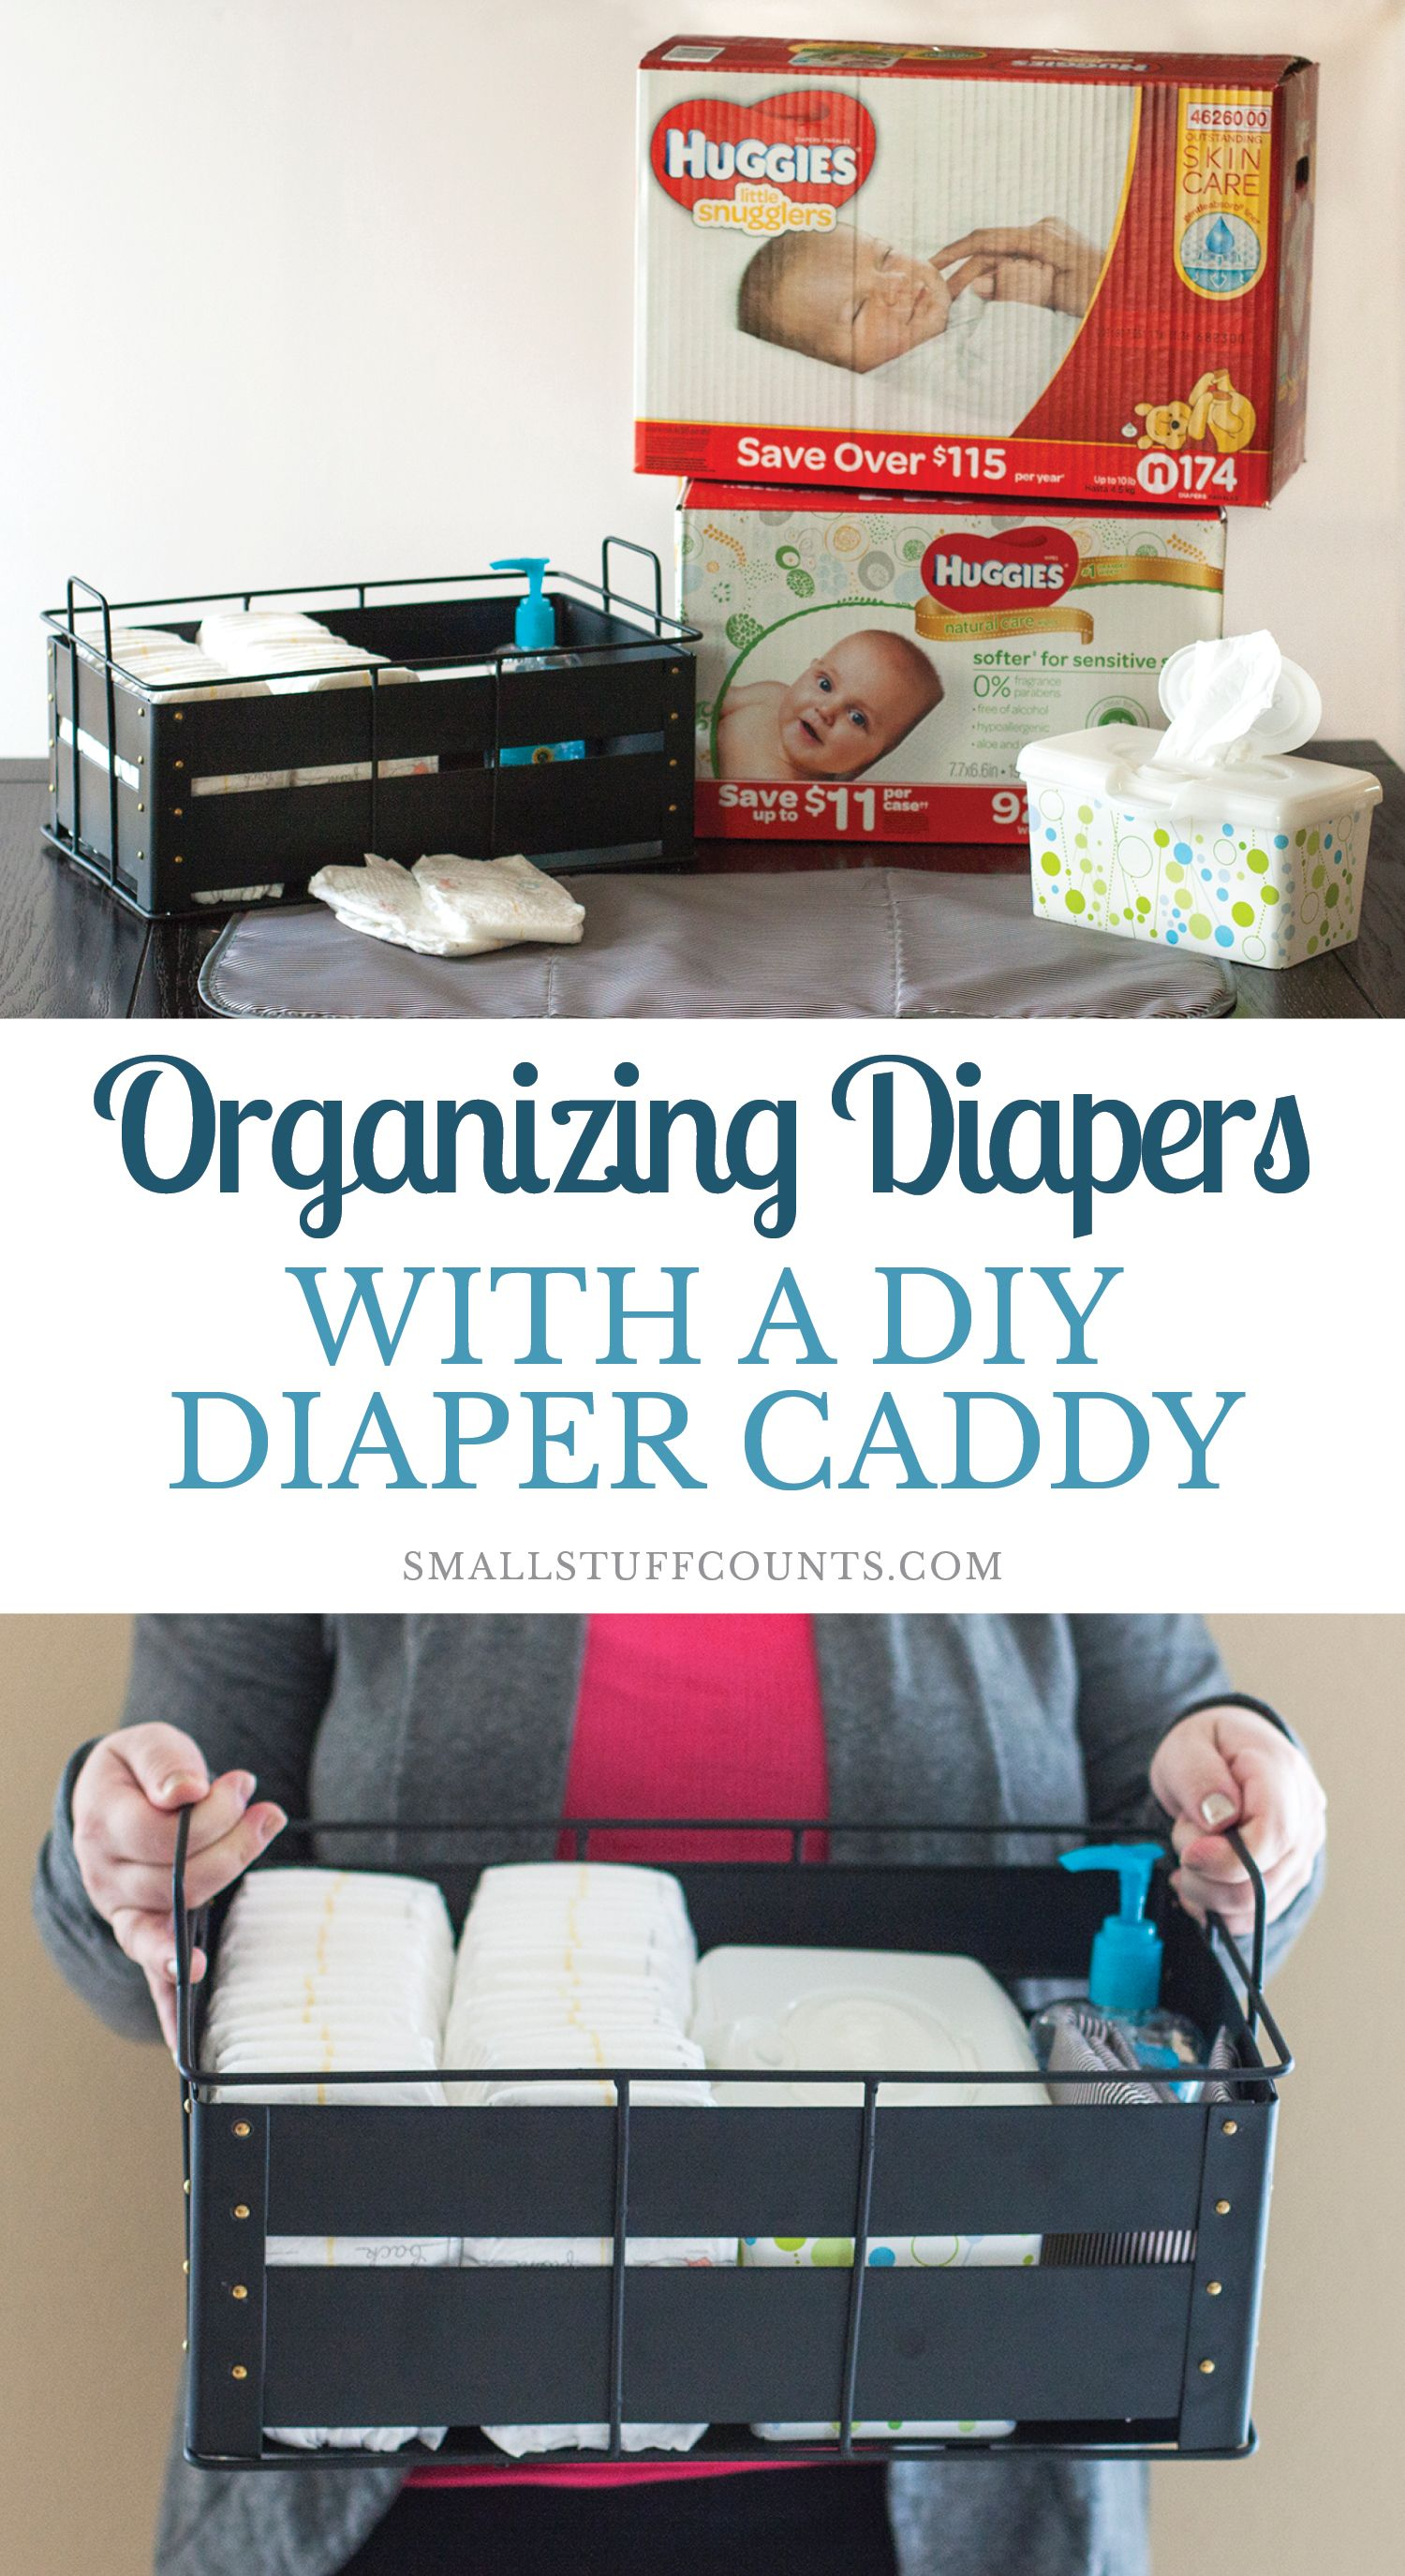 Organizing Diapers With A Diy Diaper Caddy Diy Diapers Diaper Caddy Diaper Caddy Diy